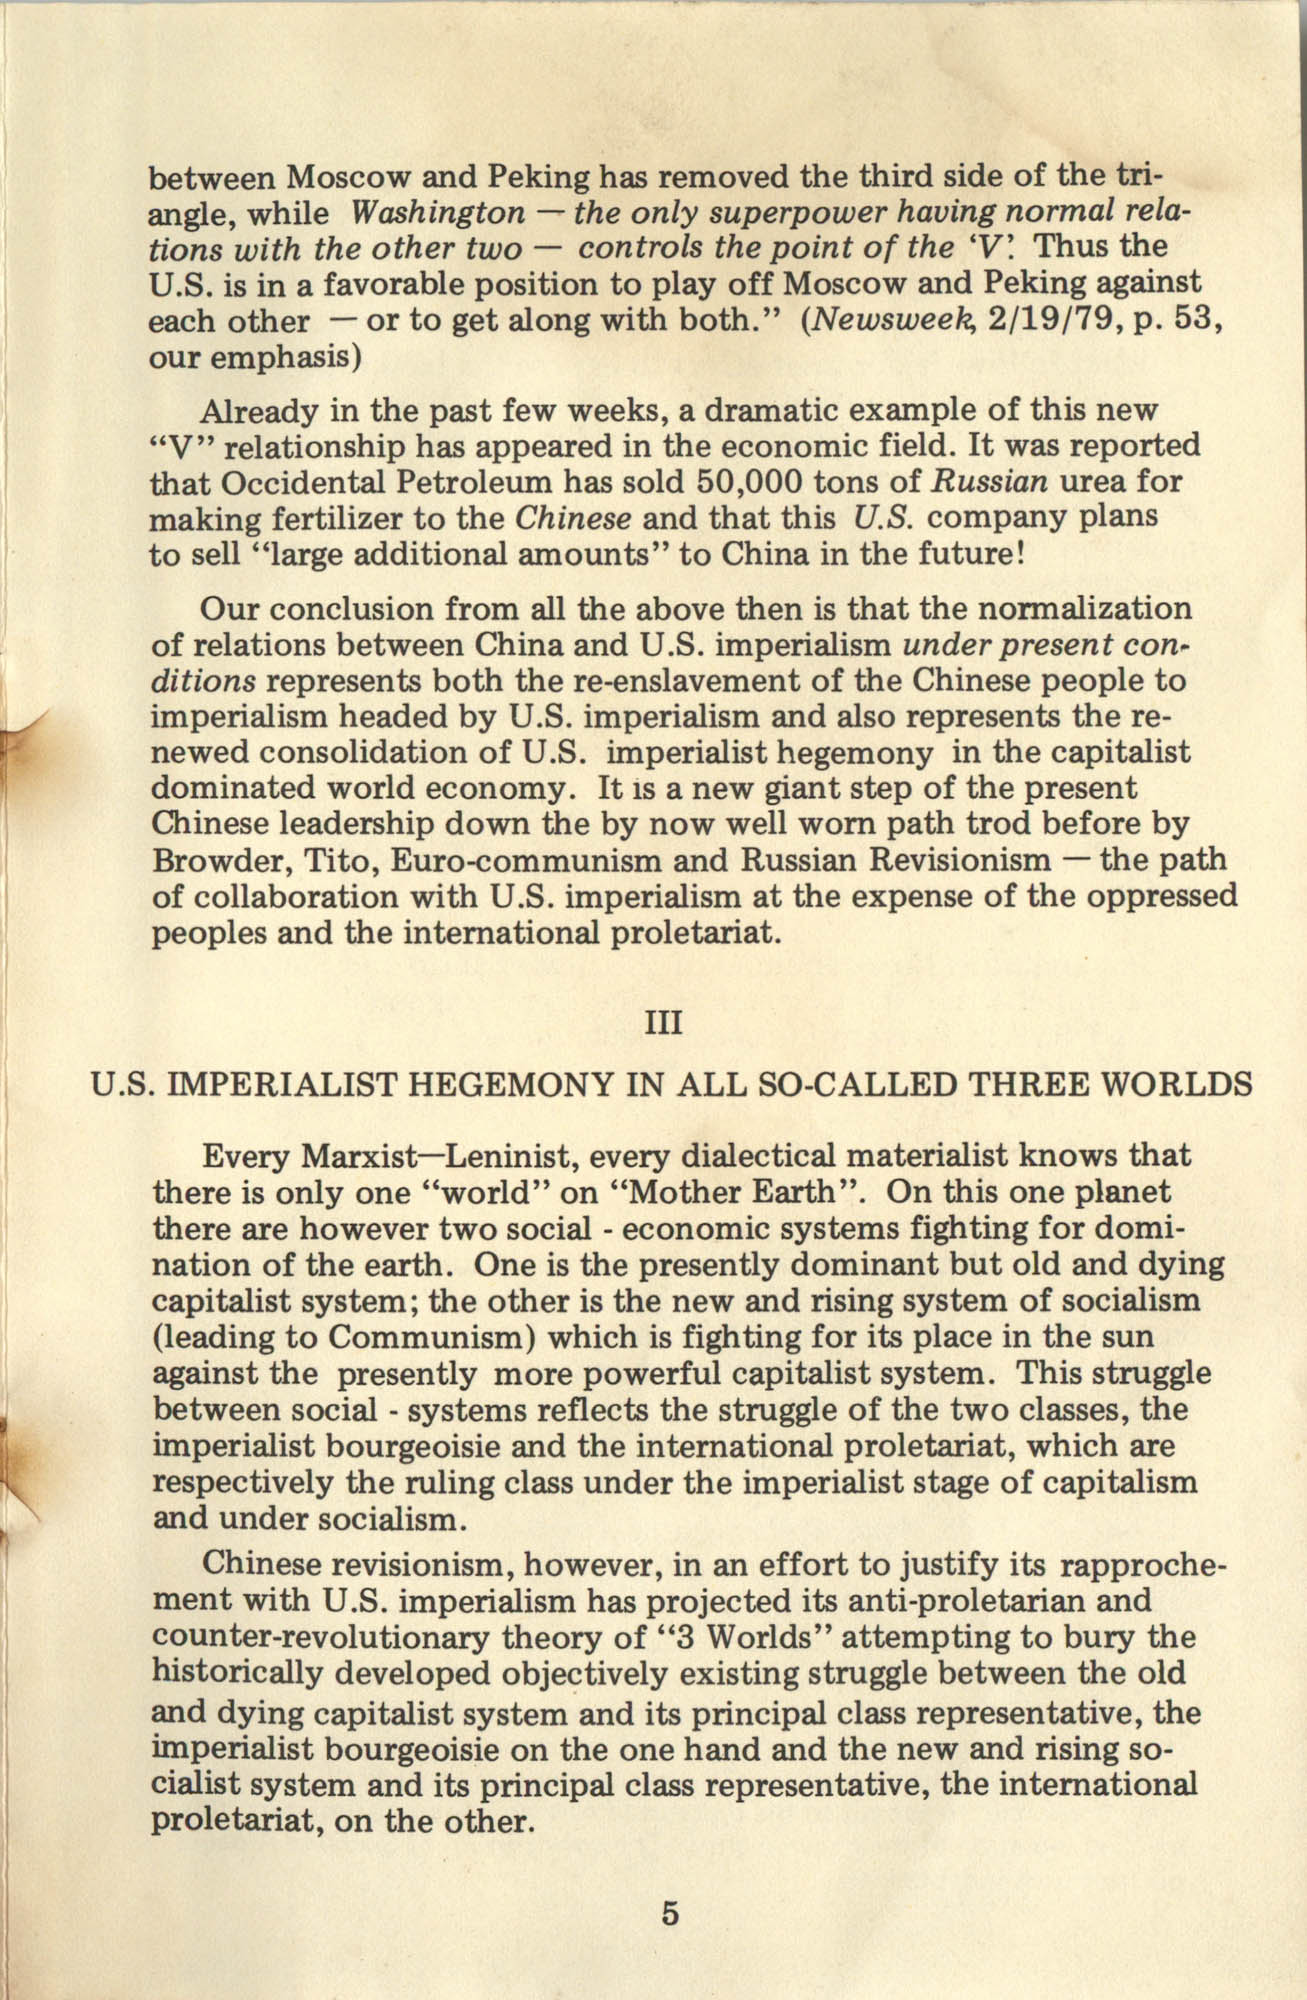 Ray O. Light Newsletter, Volume 1, Number 2, Page 5